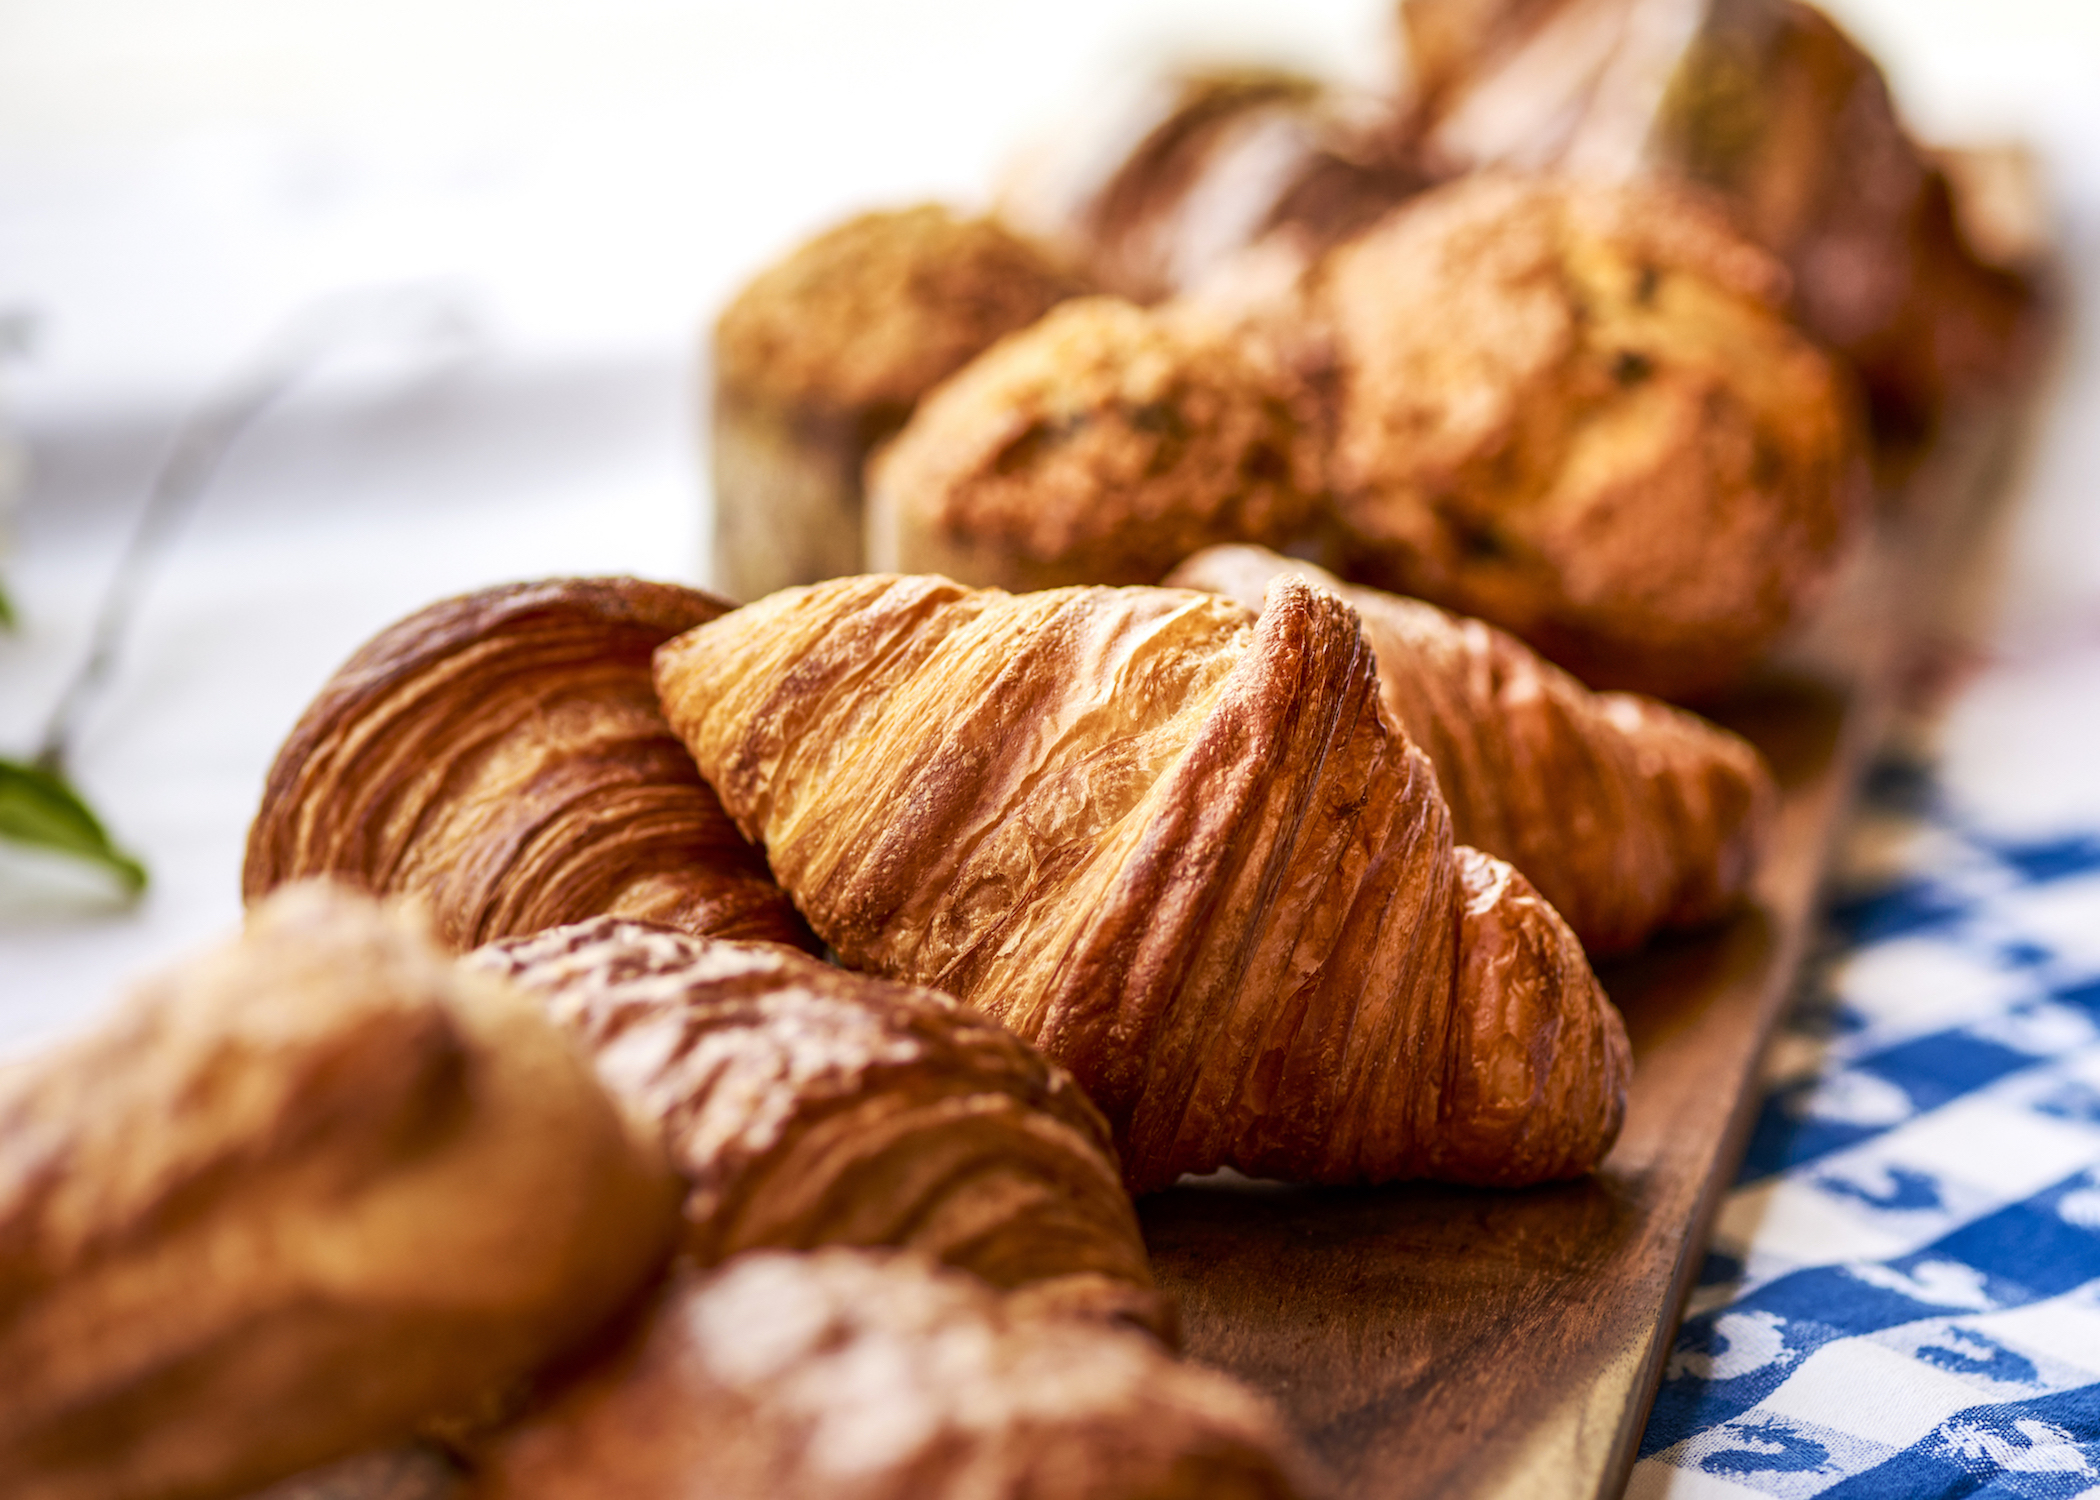 A croissant prepared by Goodpaster at Patisserie 46. The pastry chef said the seemingly simple croissant is her favorite food to bake. Photo by Isabel Subtil.